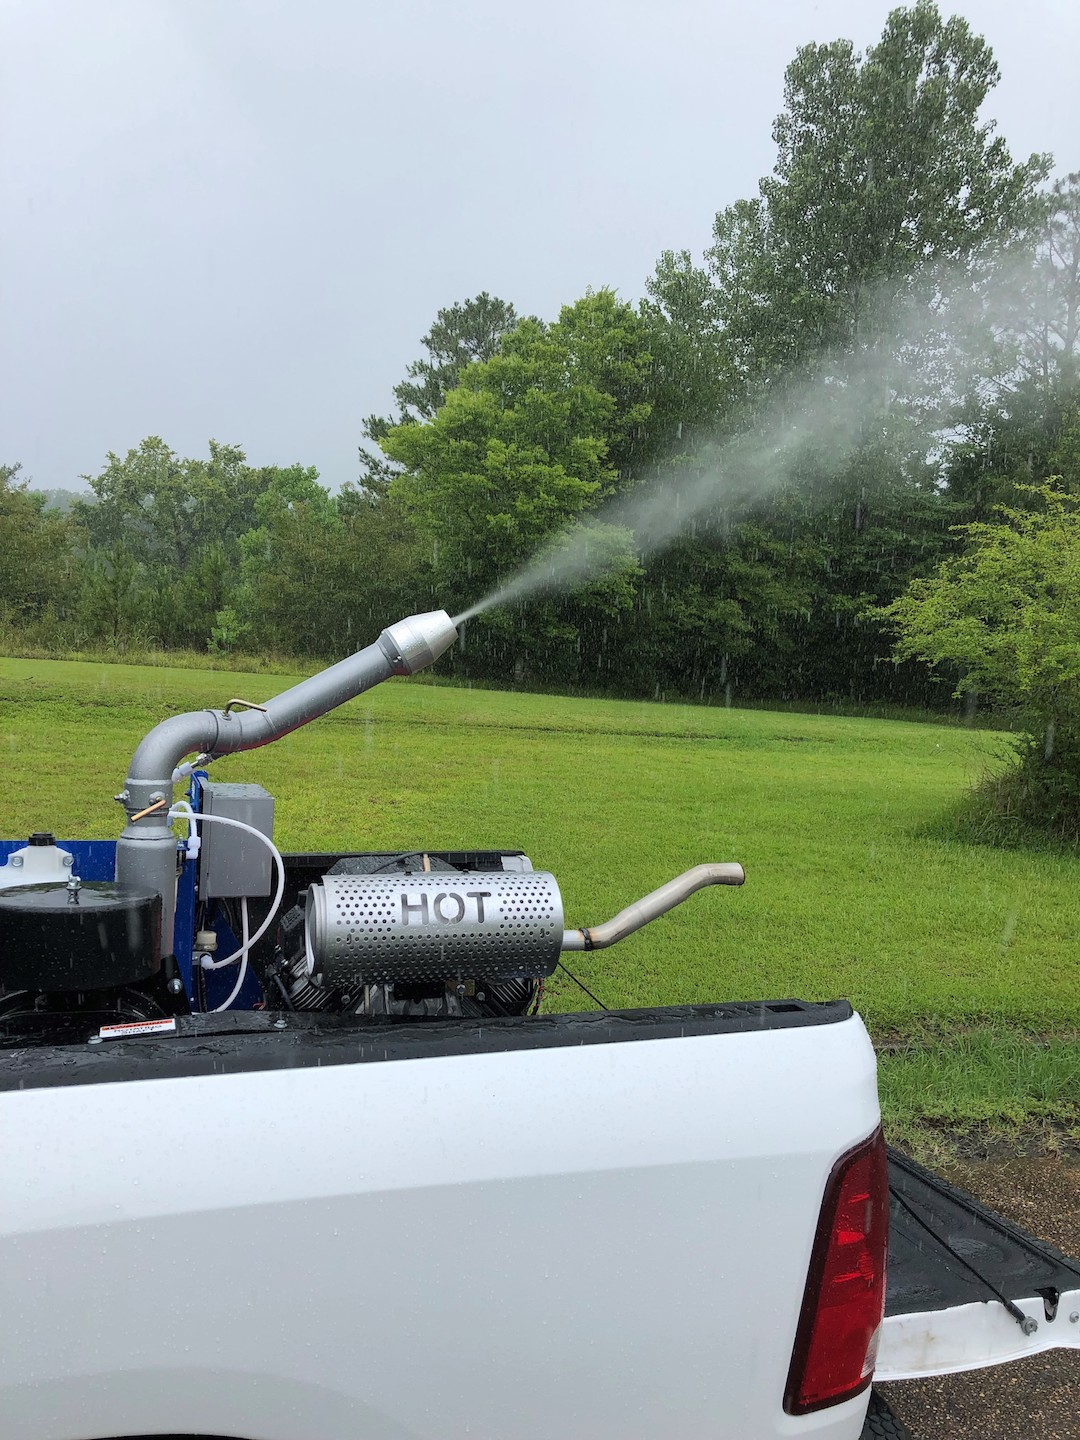 A machine in the back of a truck spraying a mist.